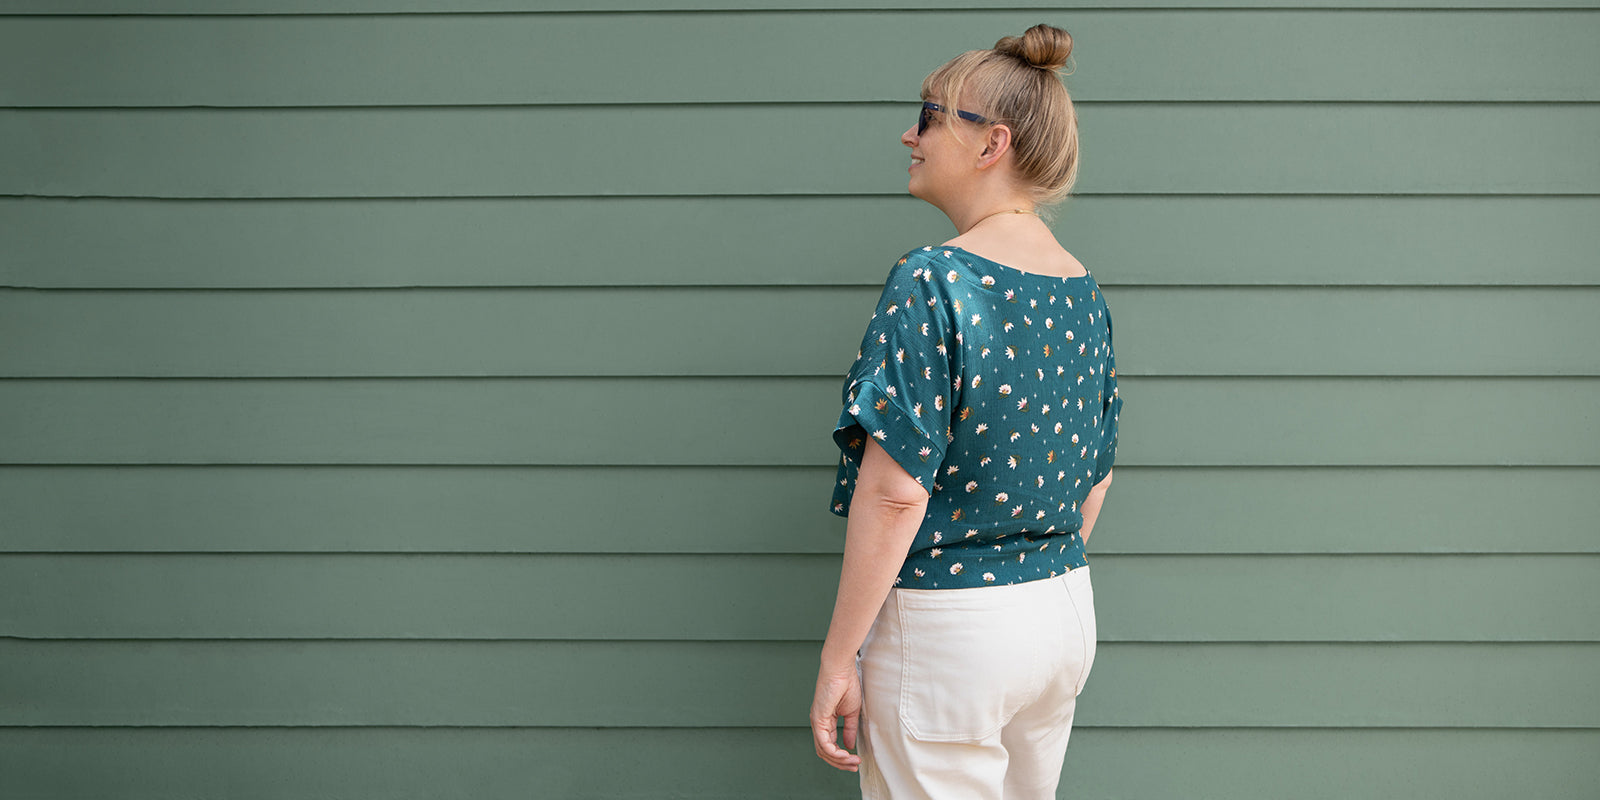 This is an image of a woman wearing a green floral top and white pants standing in front of a green wall.